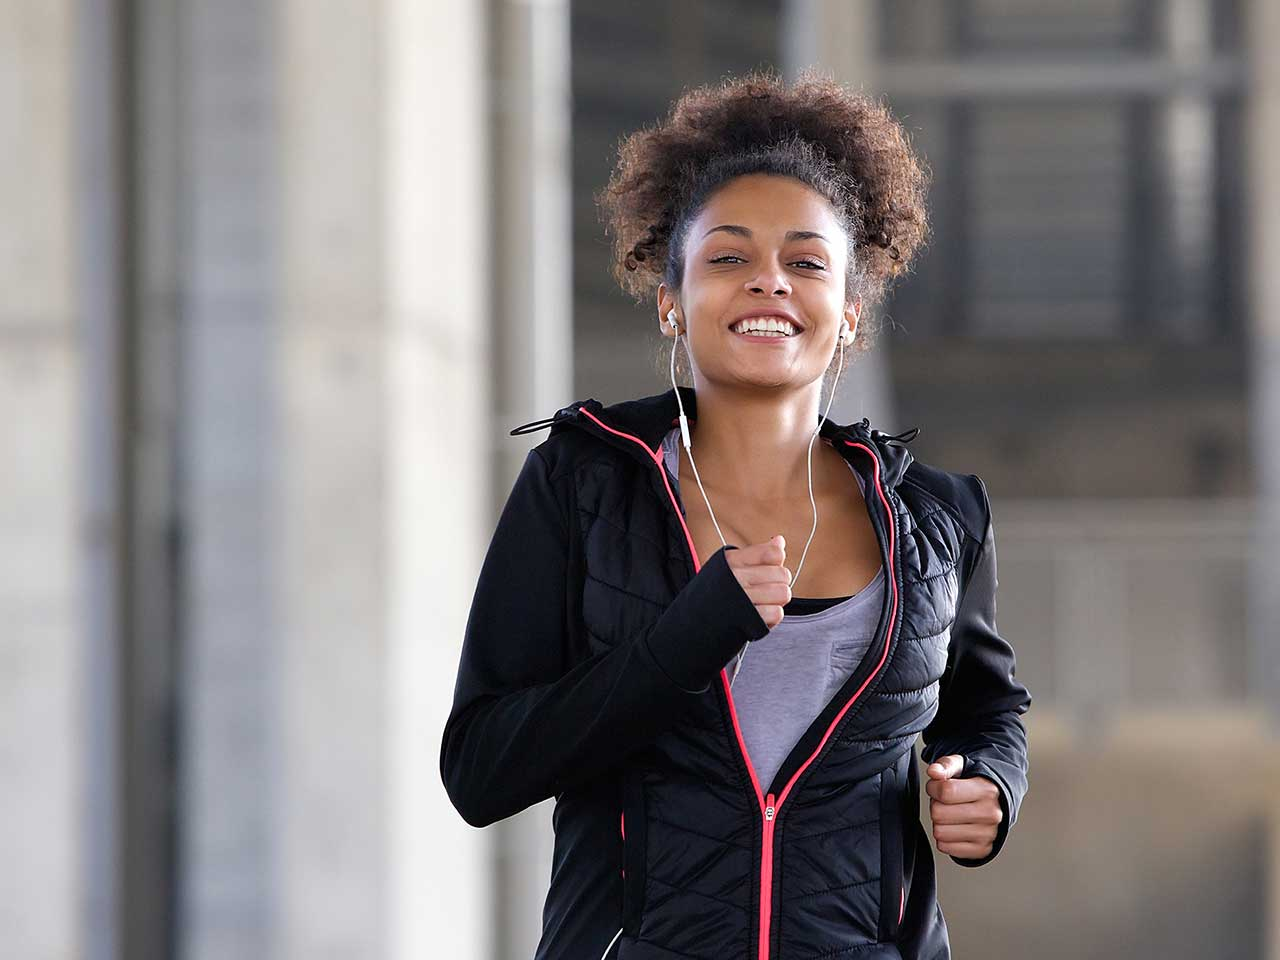 10 Reasons Running Is Good for You